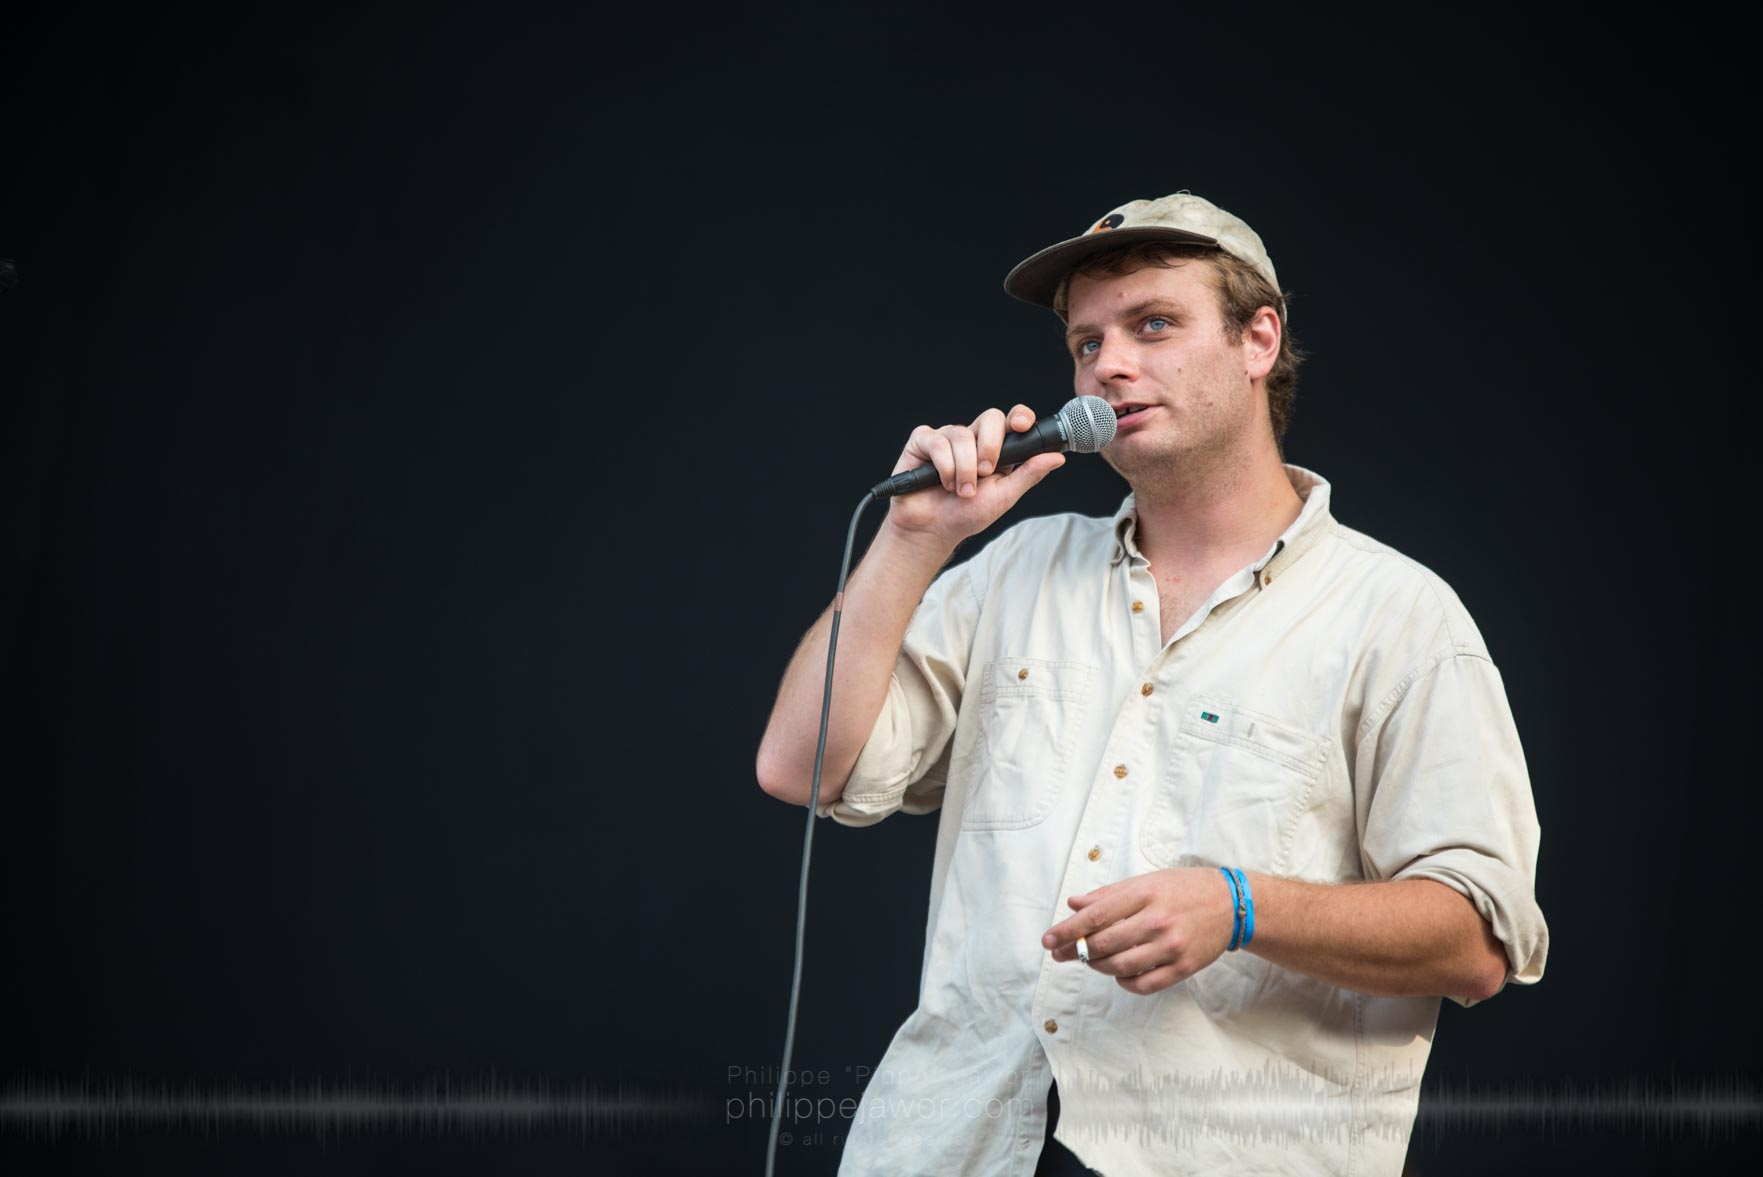 """The American indie rock artist McBriare Samuel Lanyon """"Mac"""" DeMarco, live at Rock en Seine festival, Paris, France, August 2017.  On assignment for ZYVA Magazine All rights reserved."""